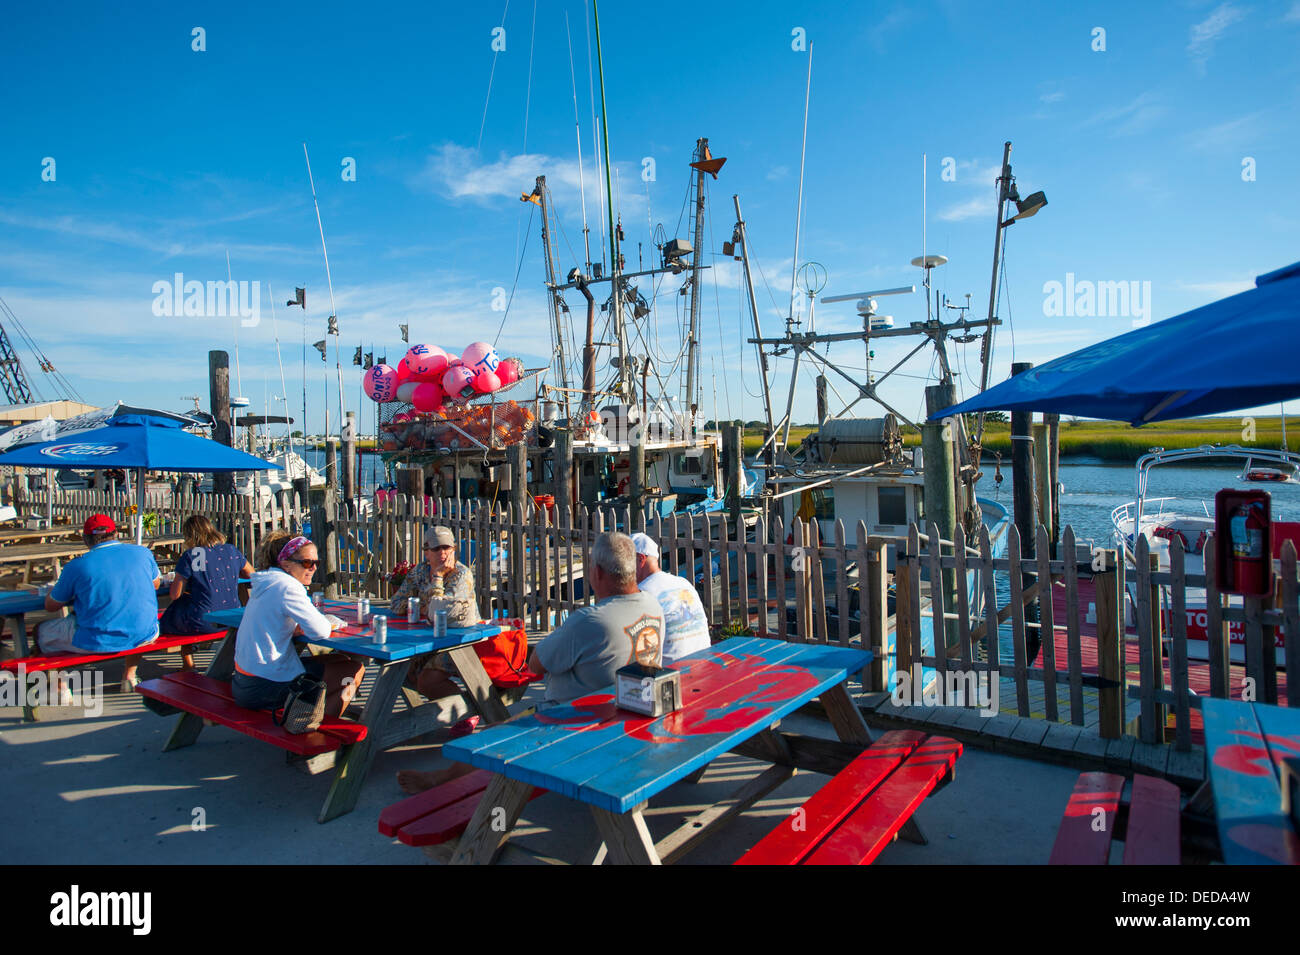 USA, New Jersey NJ Wildwood Hooked Up seafood market and restaurant - dining by the fishing boats outdoors summer - Stock Image